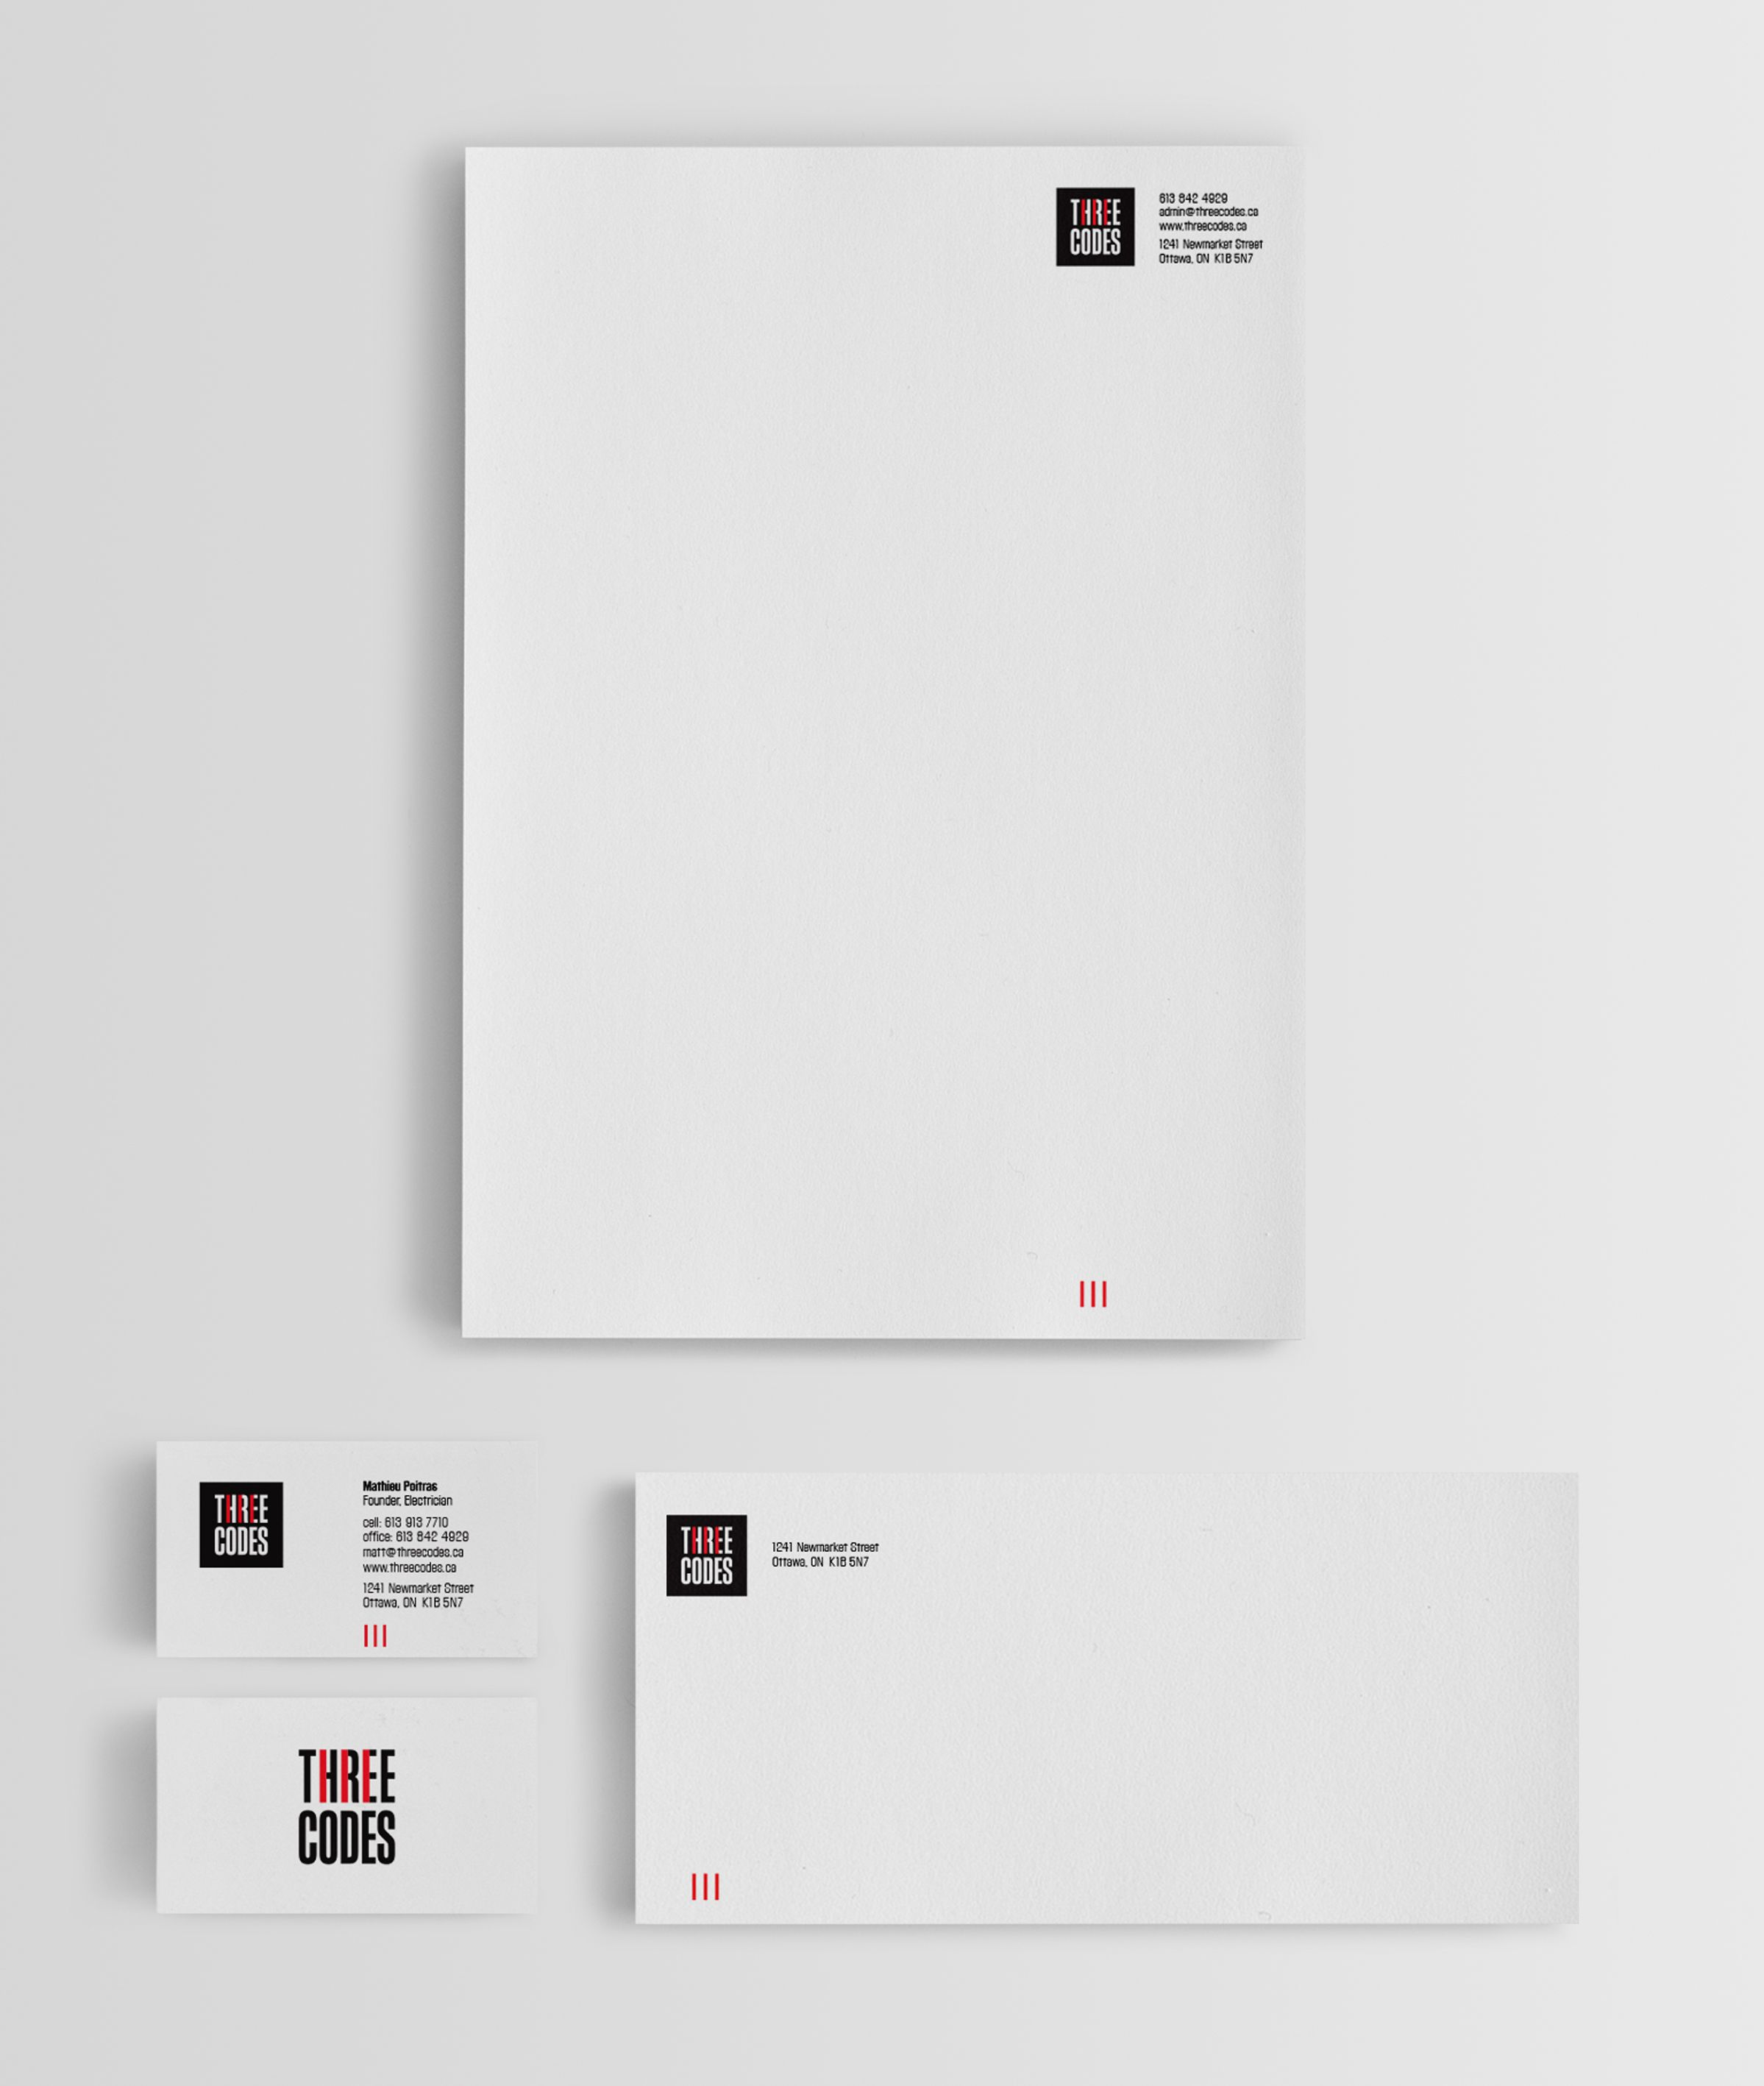 Stationery for Three Codes, an electrical company by Ottawa Graphic Designer idApostle